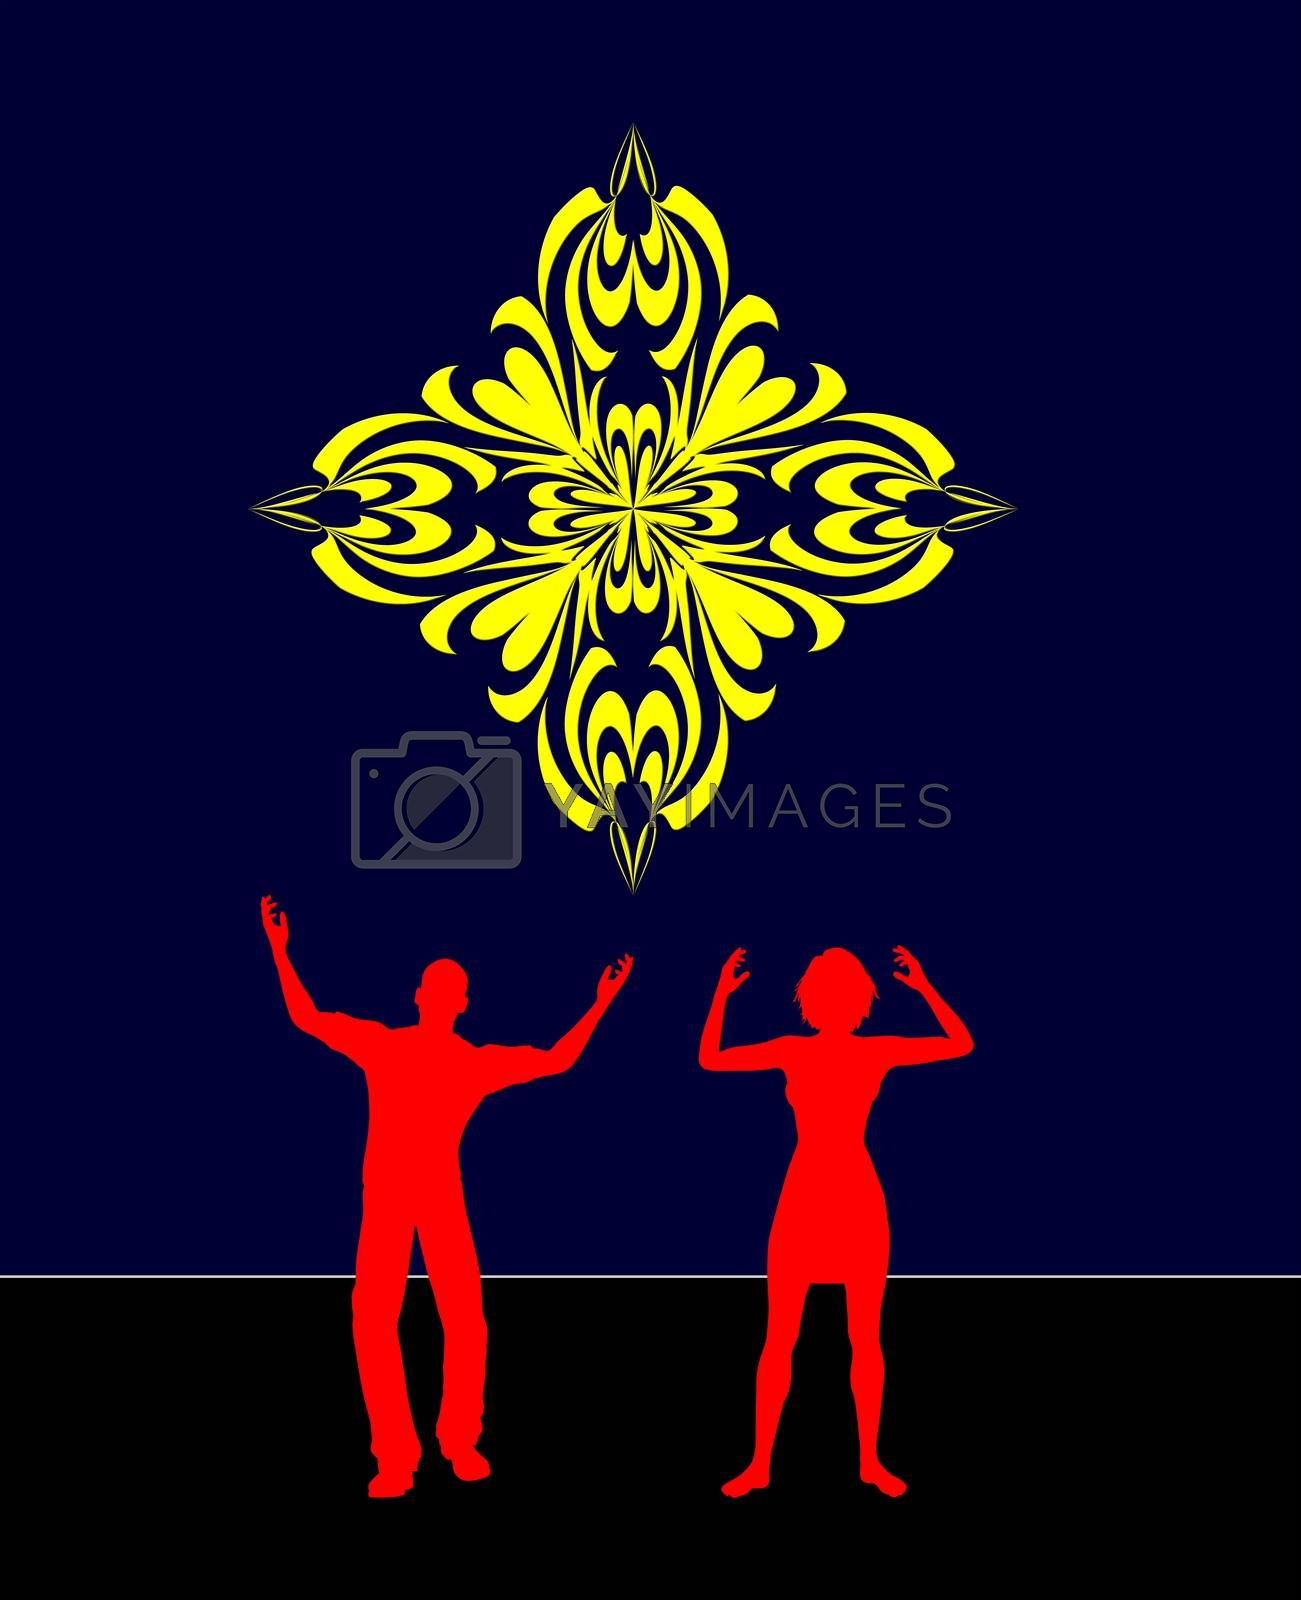 Concept sign of two people worshiping the Holy Cross